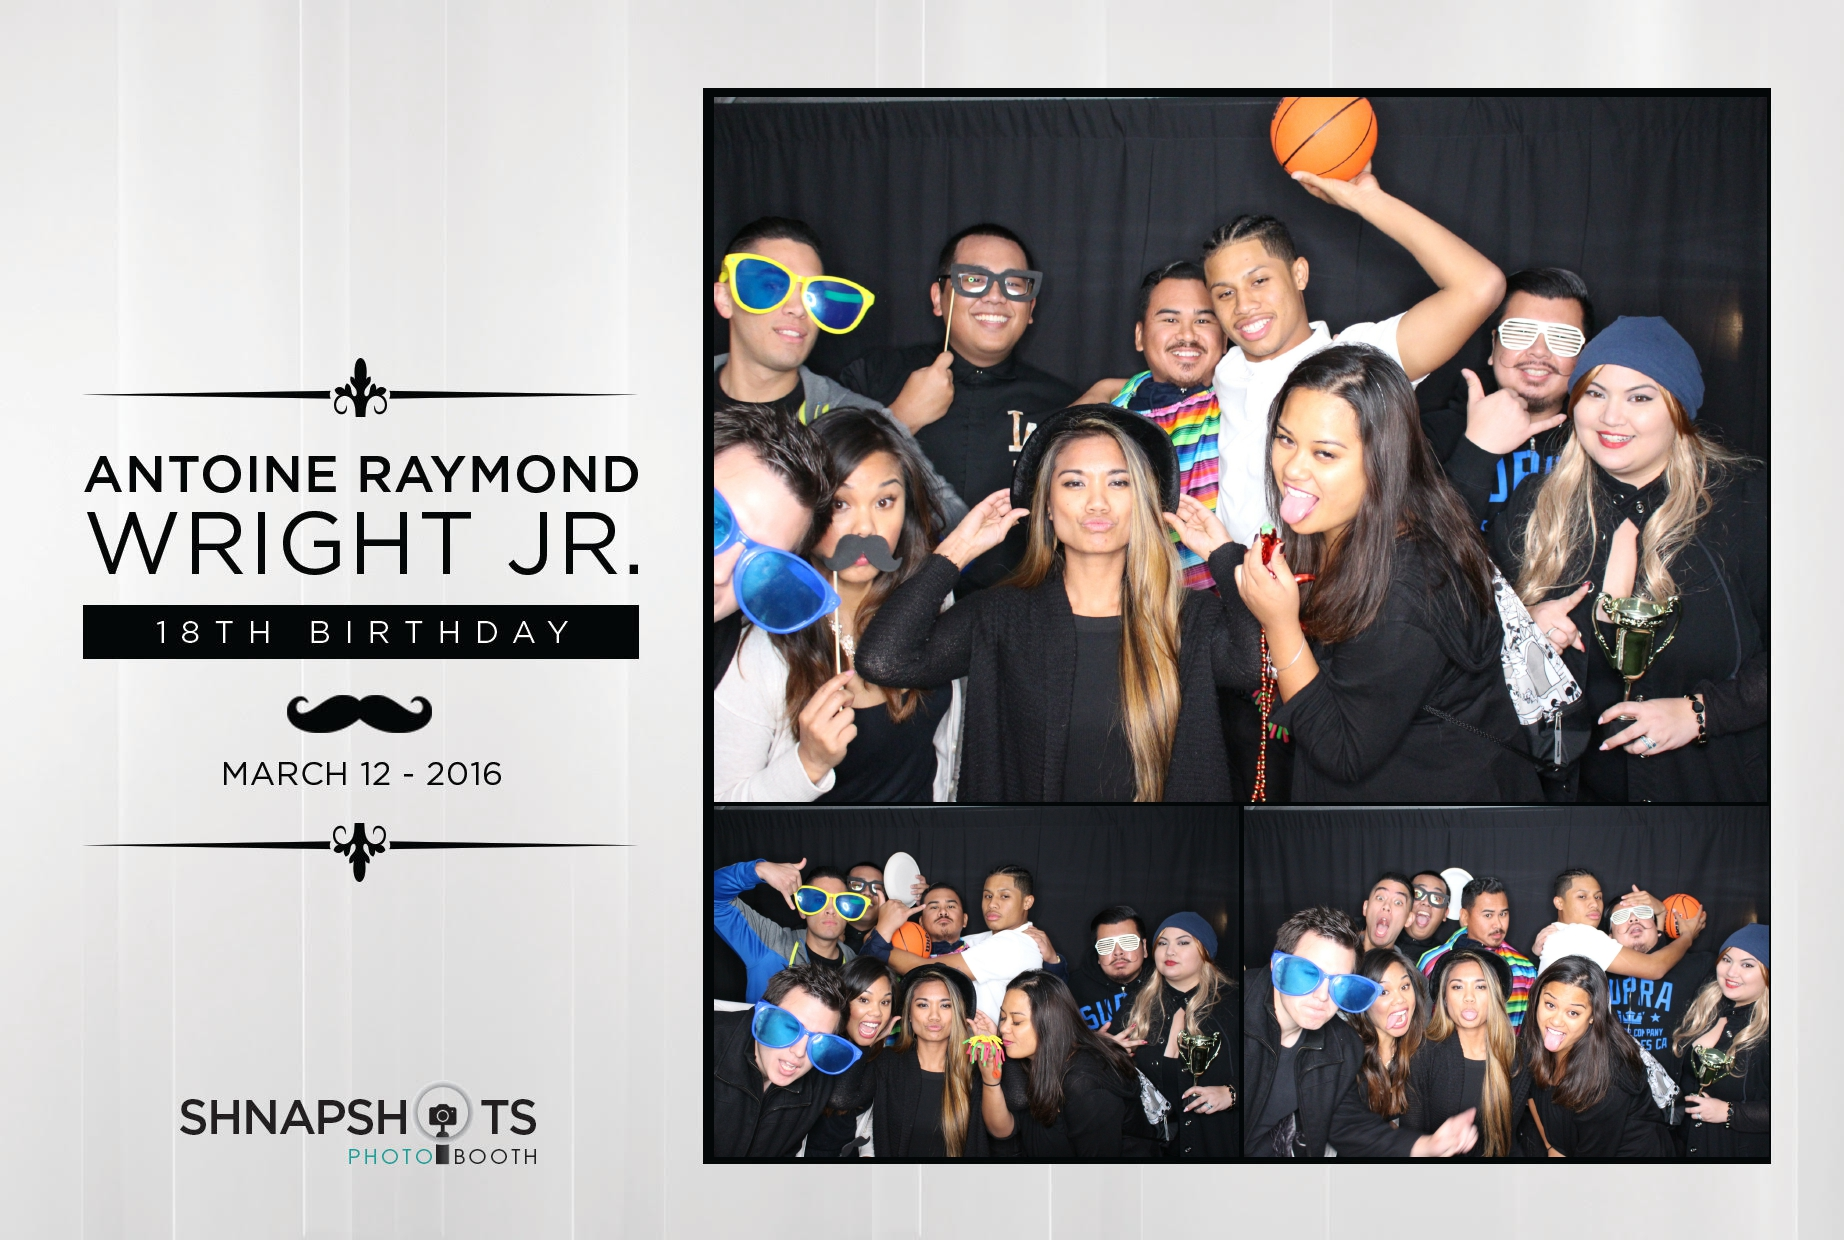 Antoine Raymond Wright Jr's 18th